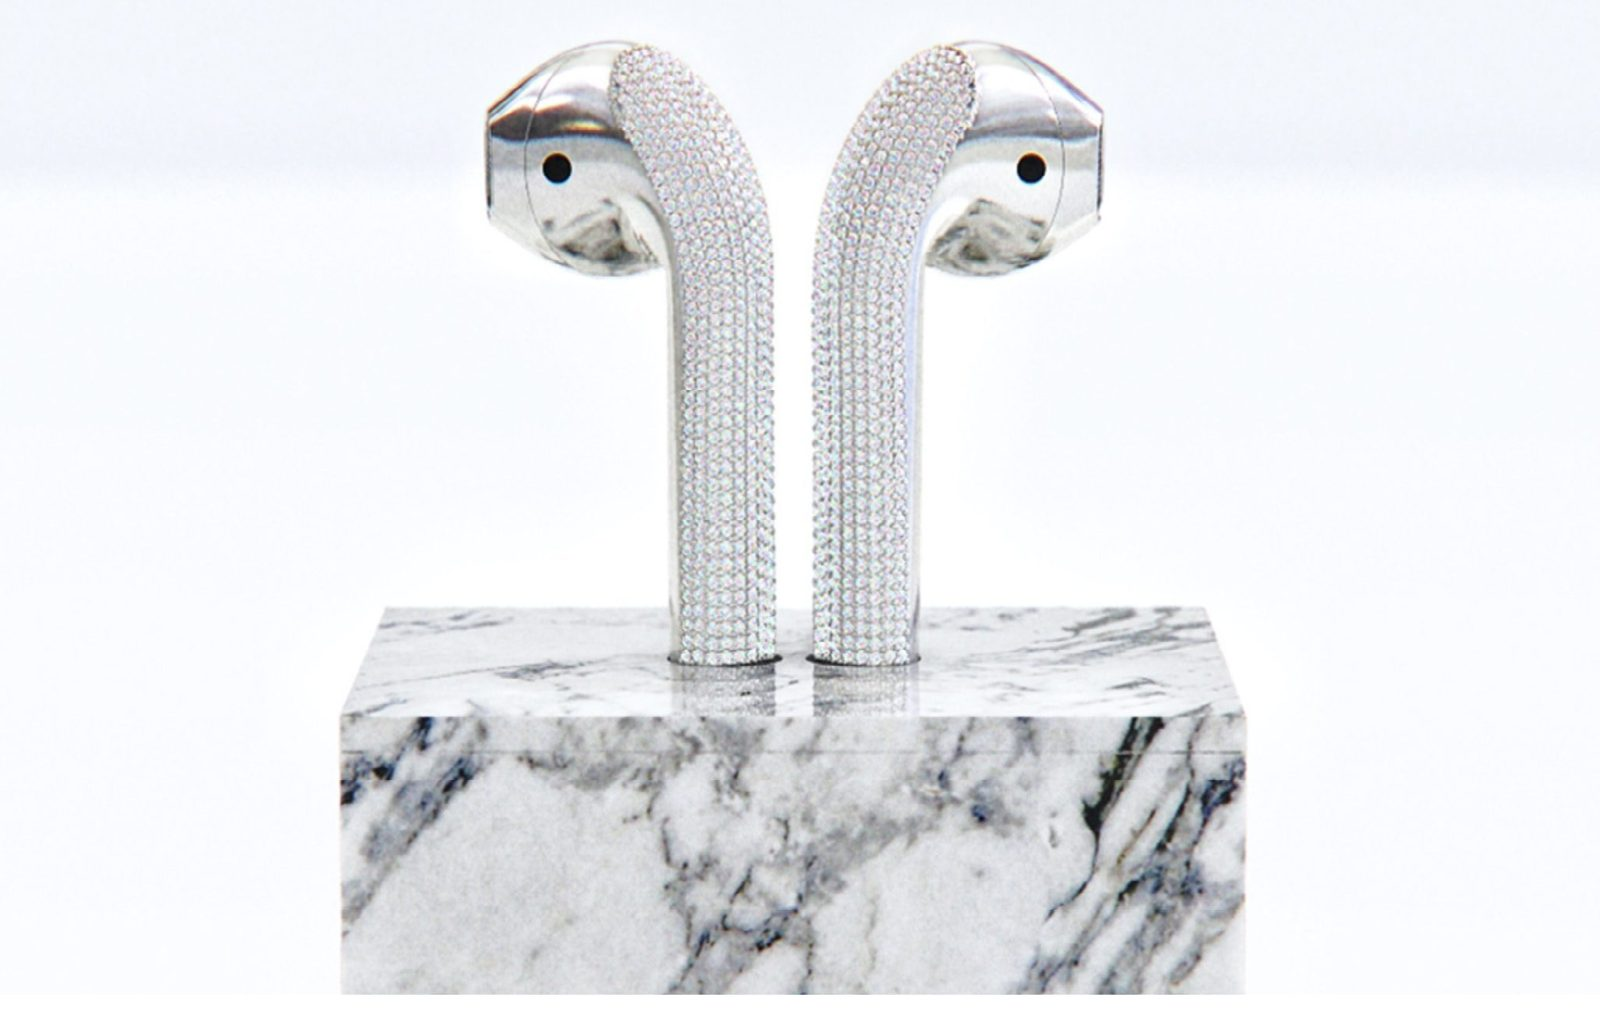 Diamond-encrusted AirPods